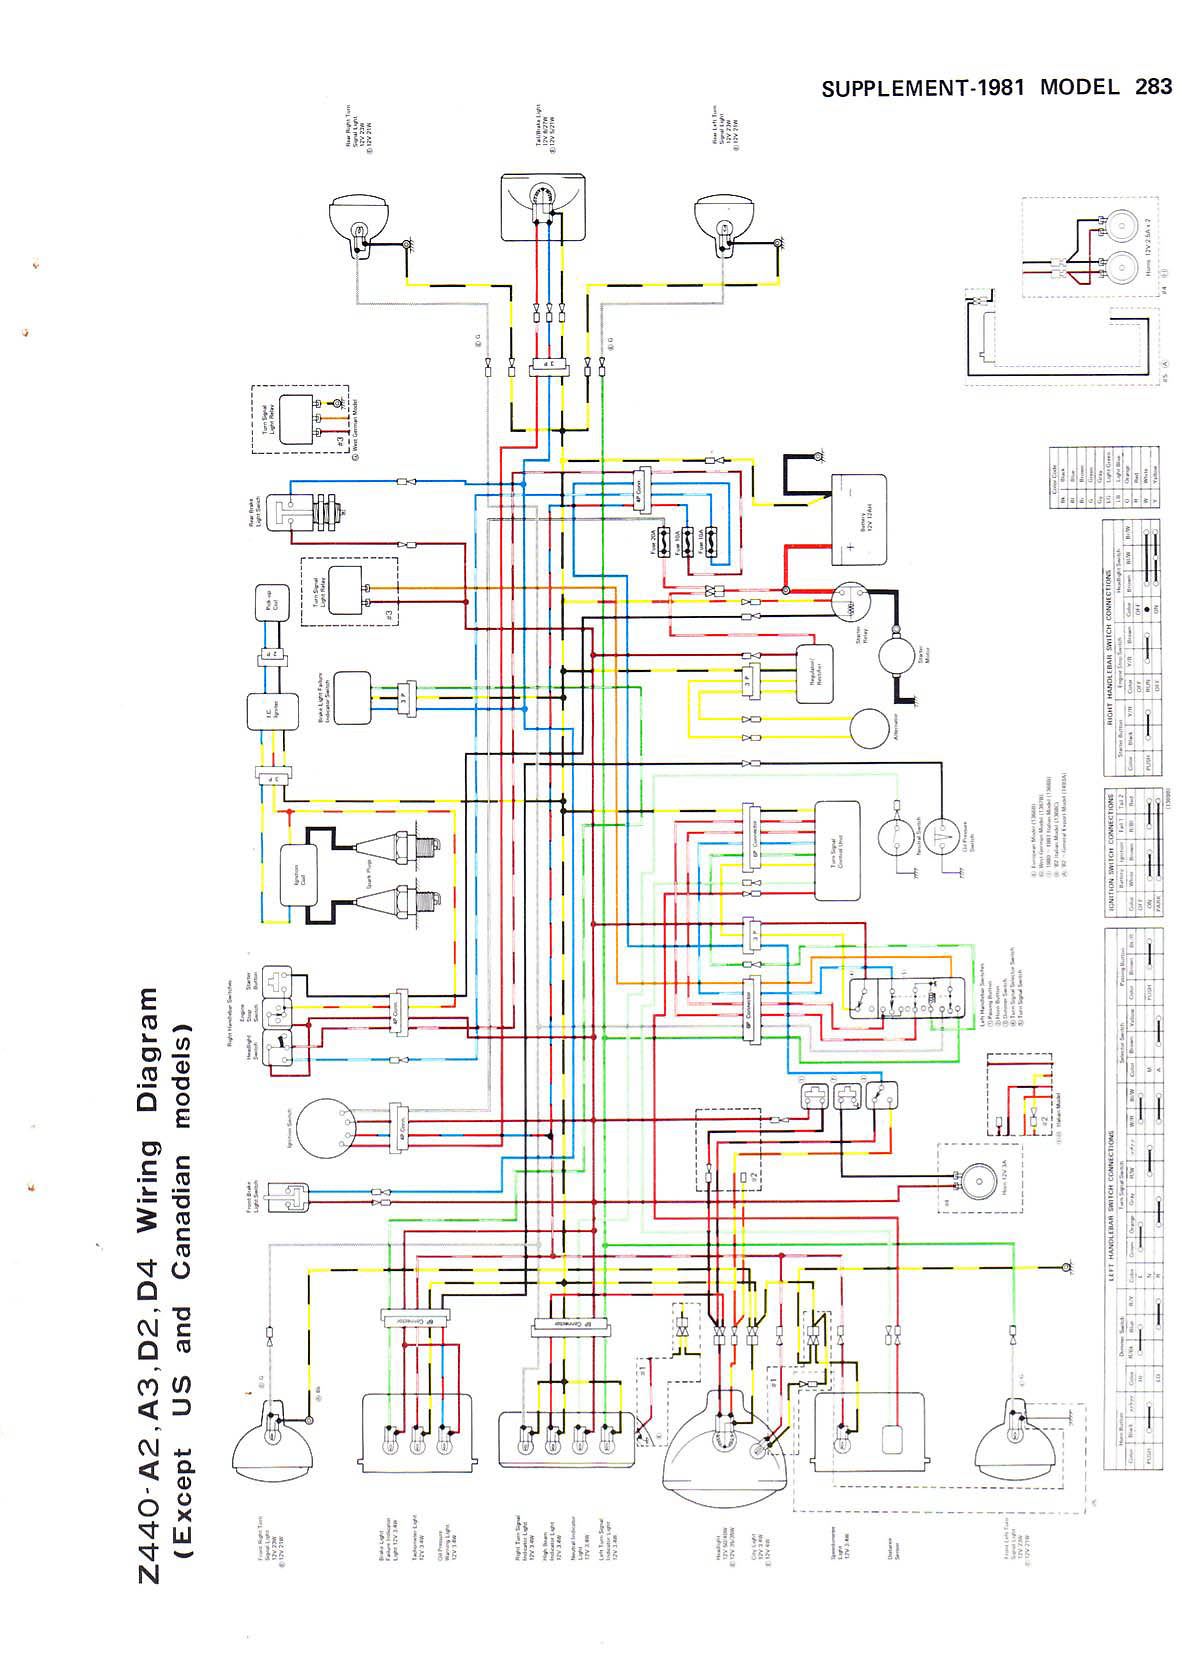 Kawasaki KZ 440 %2780 a %2782 Service Manual_Page_280 index of kz440 wiring diagrams kz440 wiring harness at honlapkeszites.co